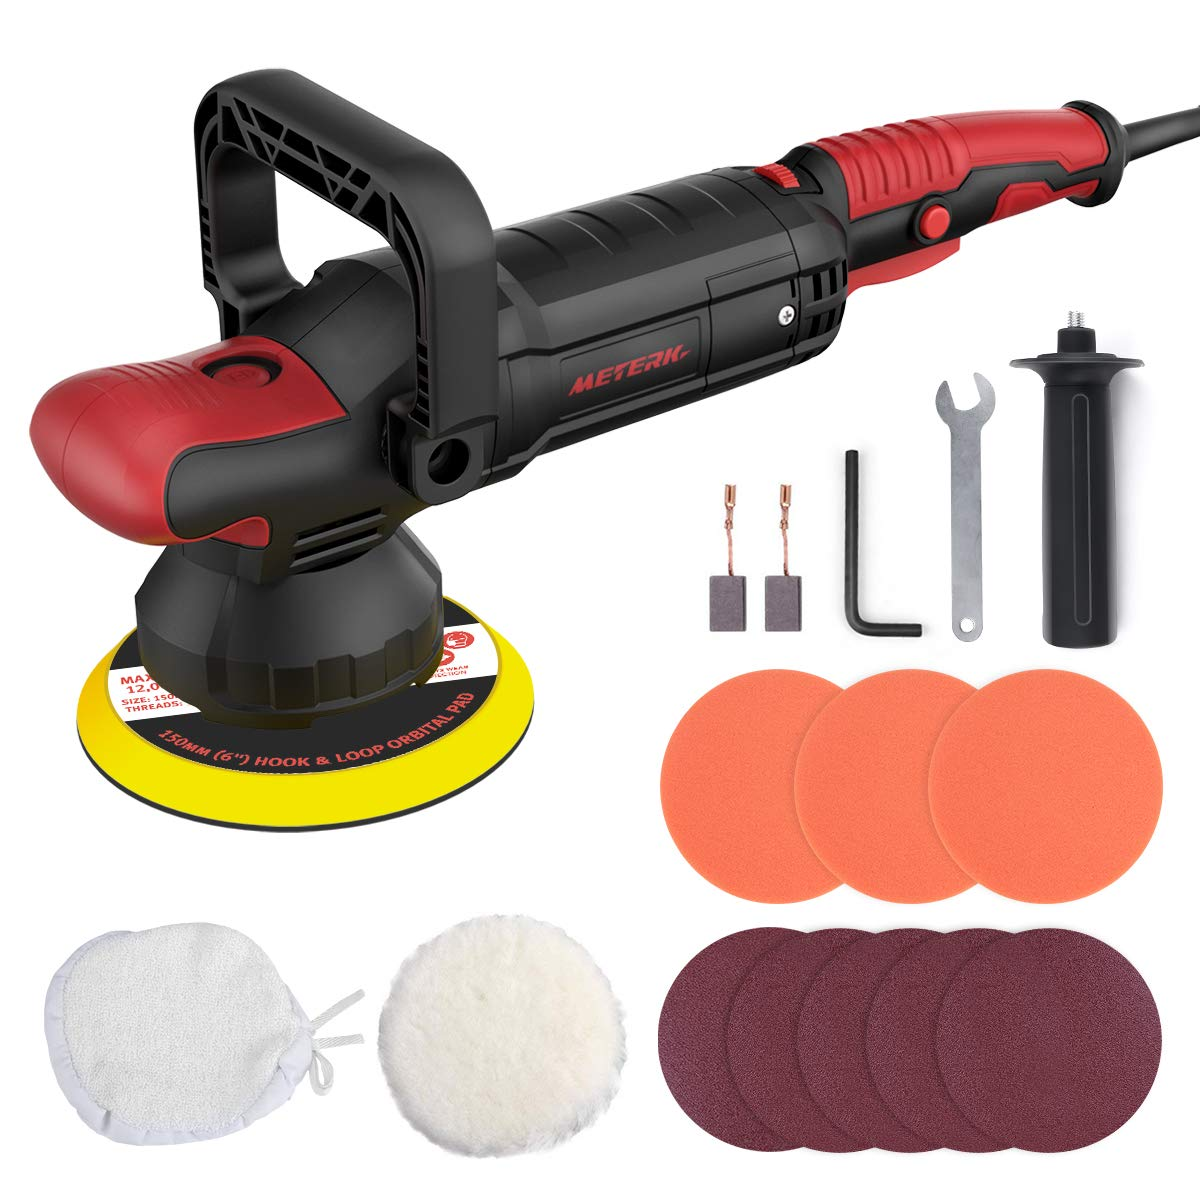 Power Polisher, Meterk Car Buffers Polisher 10.0Amp Polisher Machines 6 Variable Speeds, Lock Switch, Detachable Handle, Soft Start 180MM Base, Ideal For Car Sanding, Polishing, Waxing, Sealing Glaze